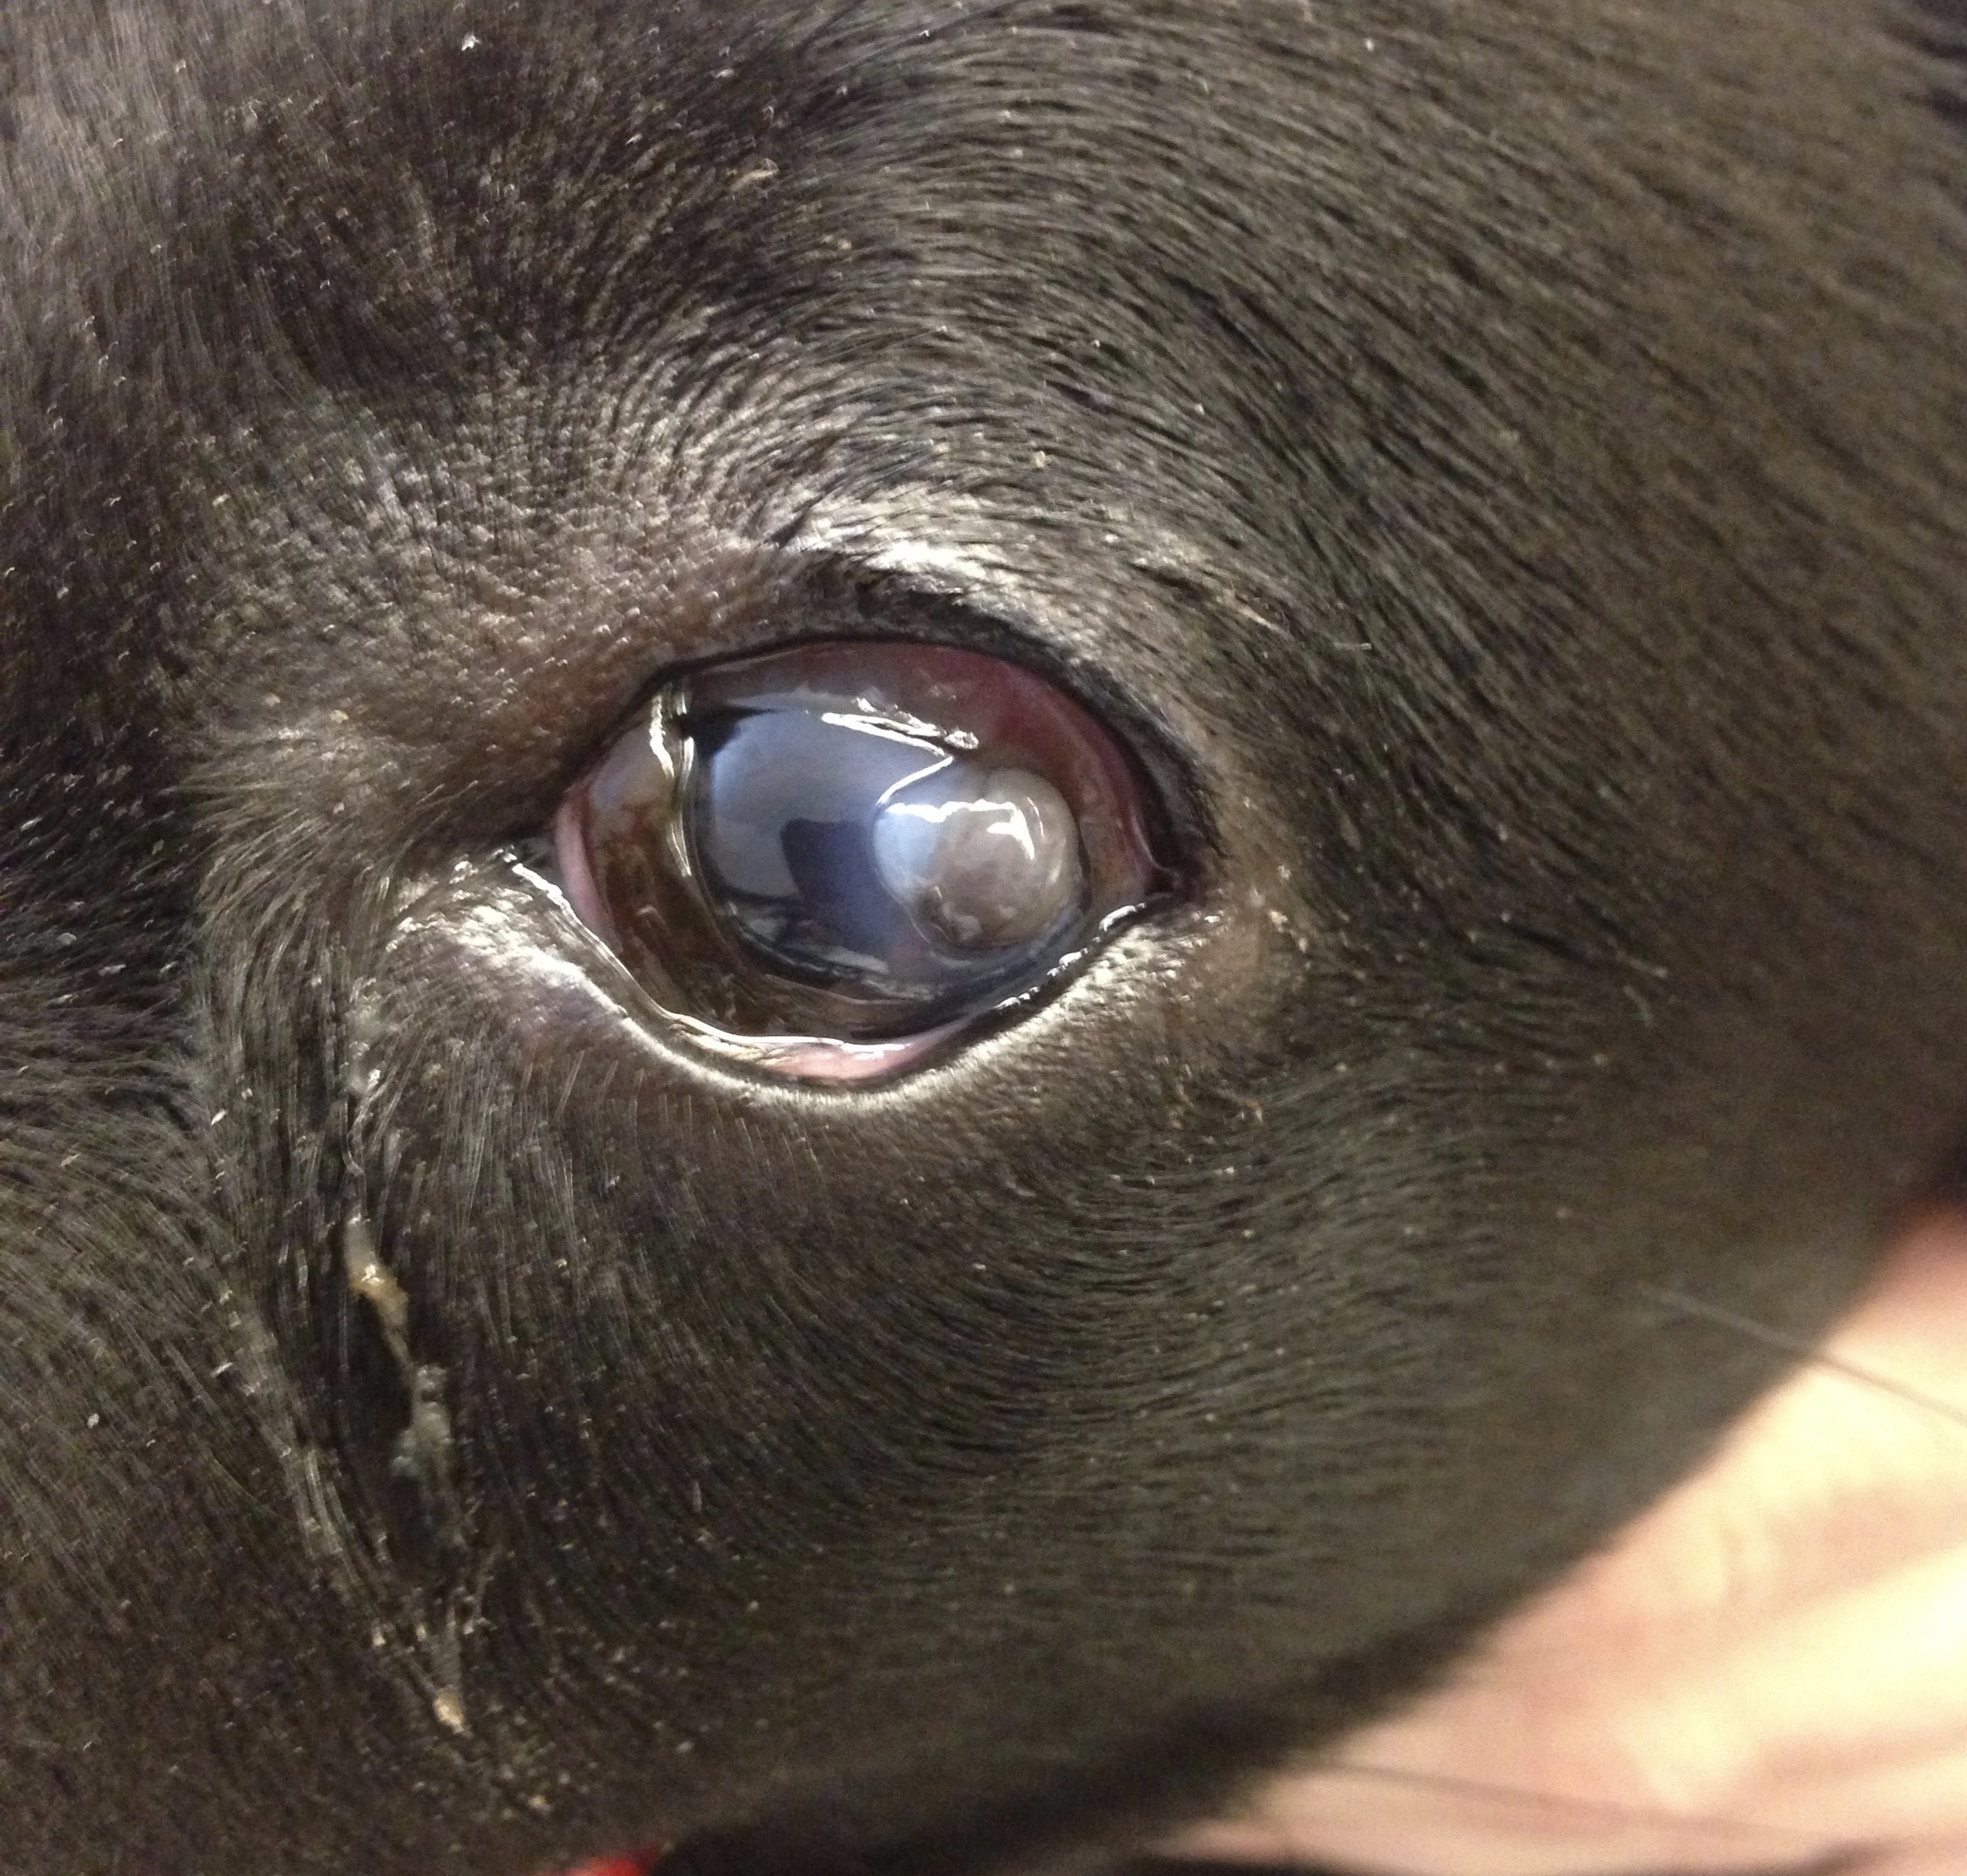 Human Eye Drops For Dogs Conjunctivitis